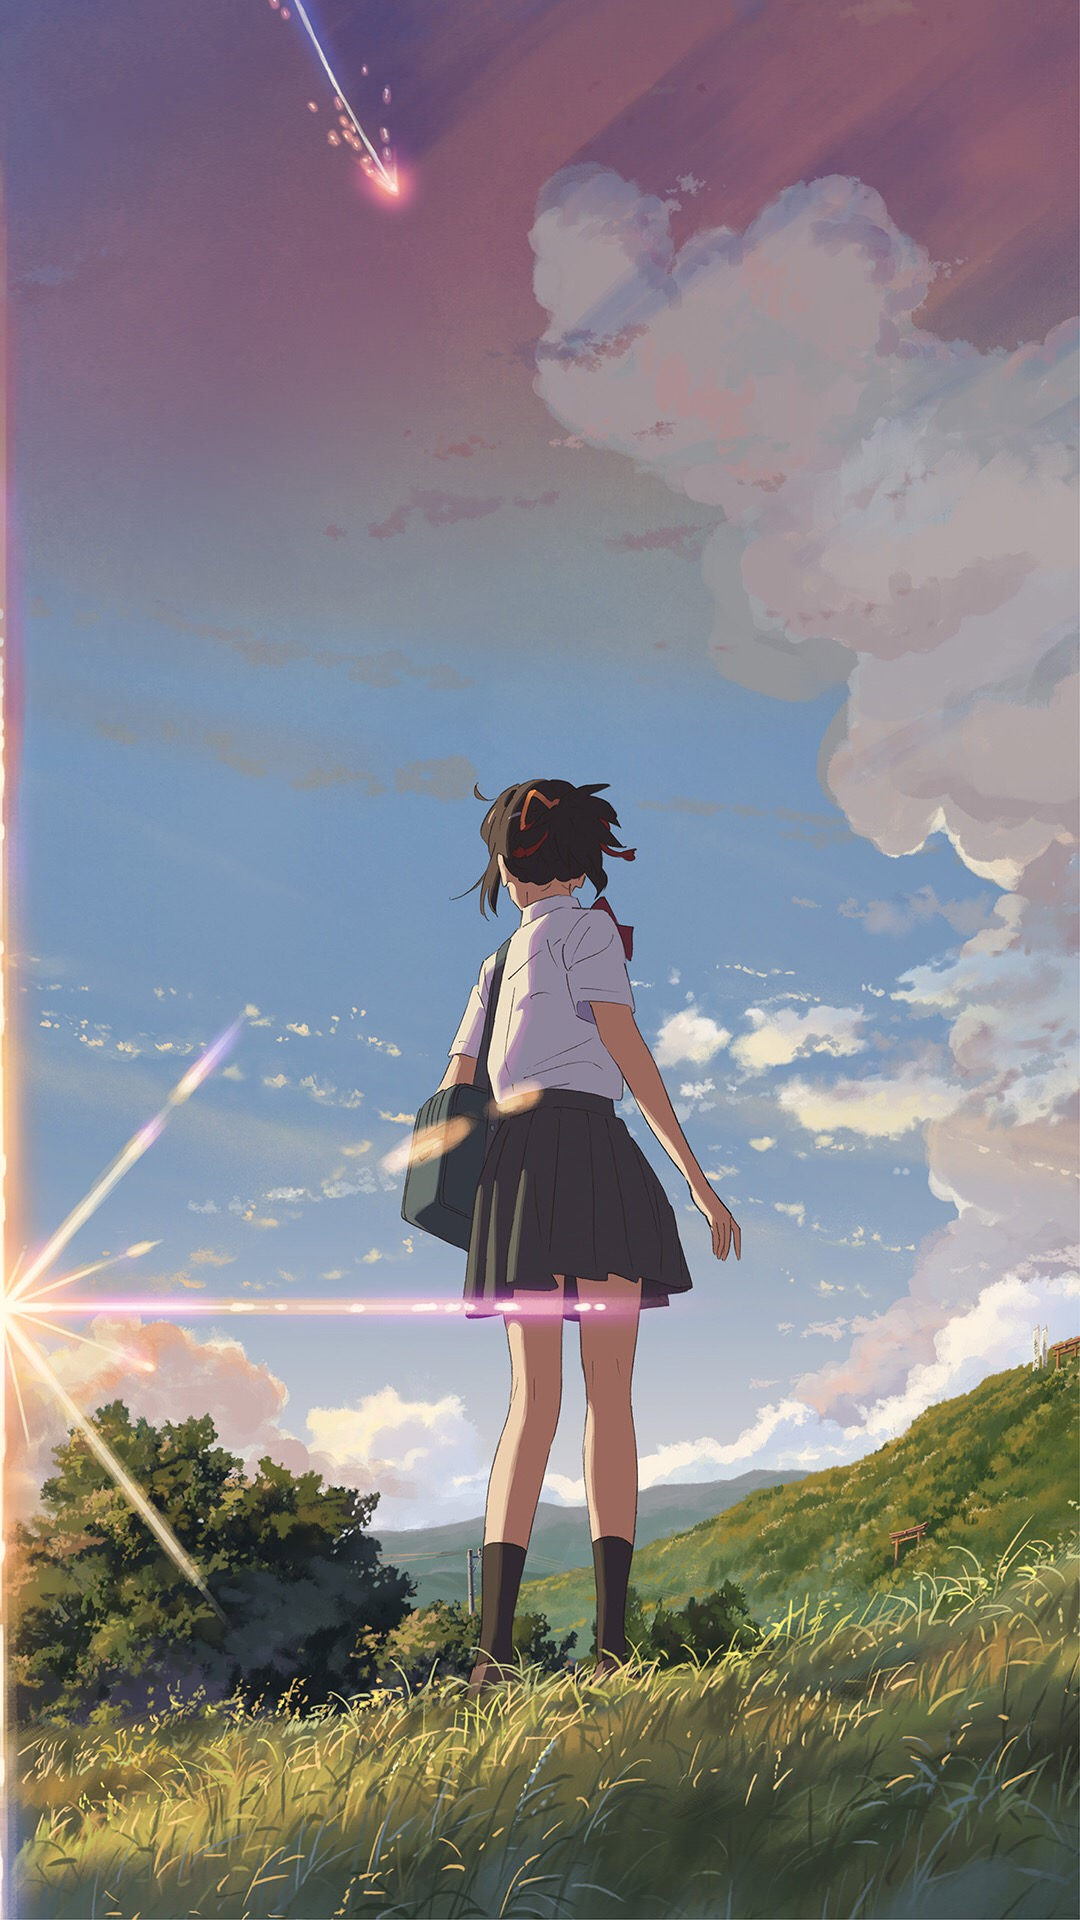 Your Name Iphone Background - HD Wallpaper